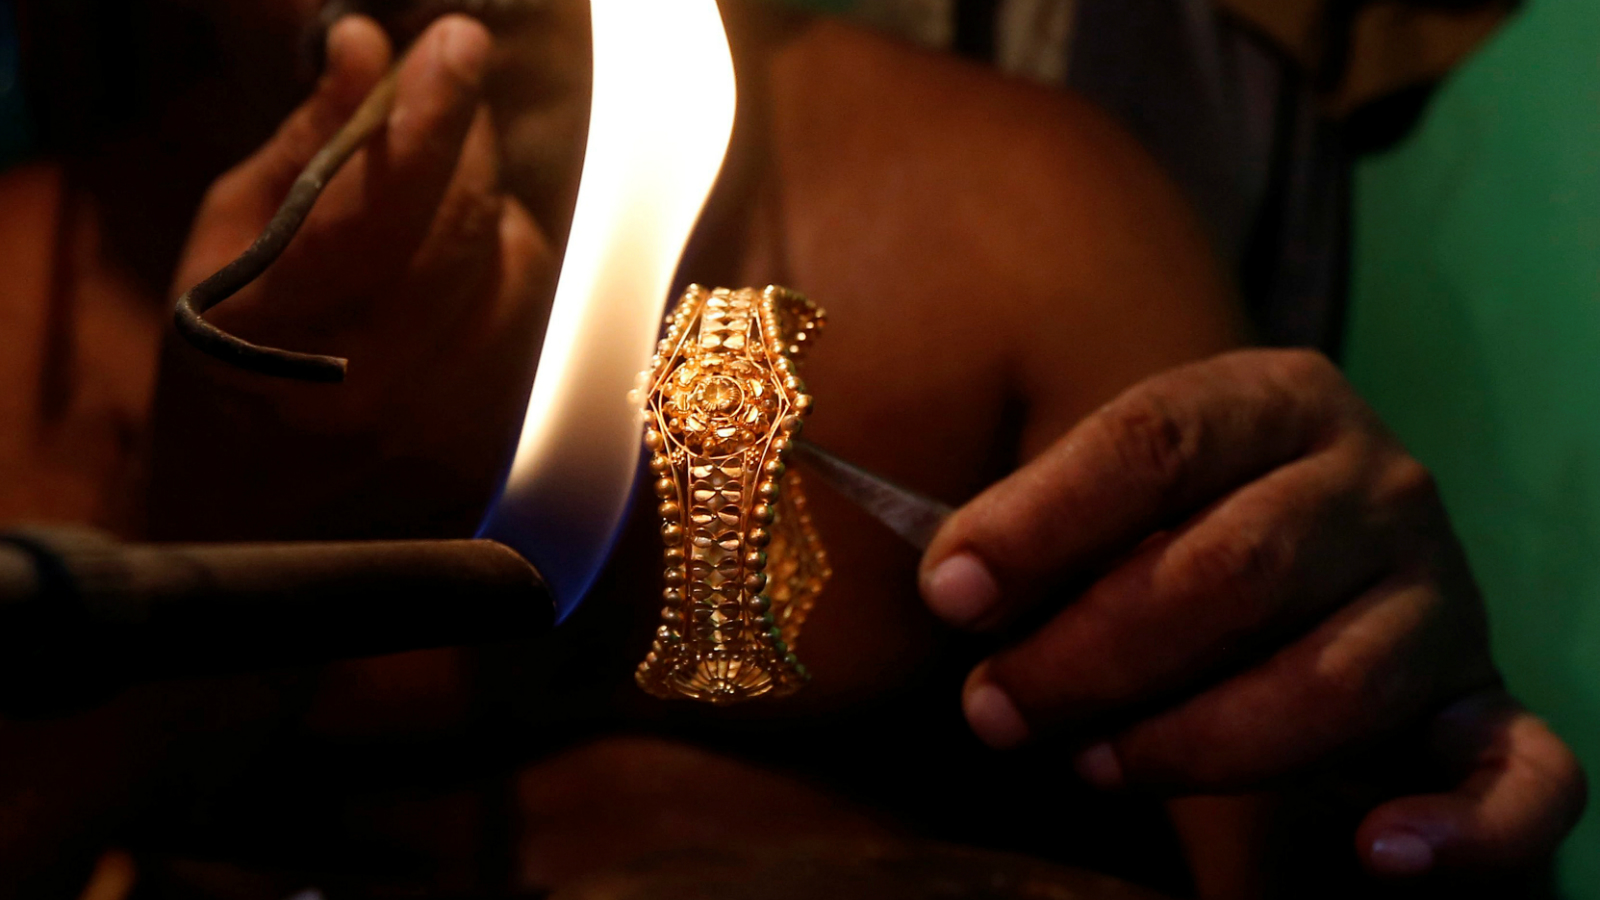 A goldsmith works on a gold bangle at a workshop in Kolkata, India, May 18, 2017. Picture taken May 18, 2017. REUTERS/Rupak De Chowdhuri - RC1CB9896BD0